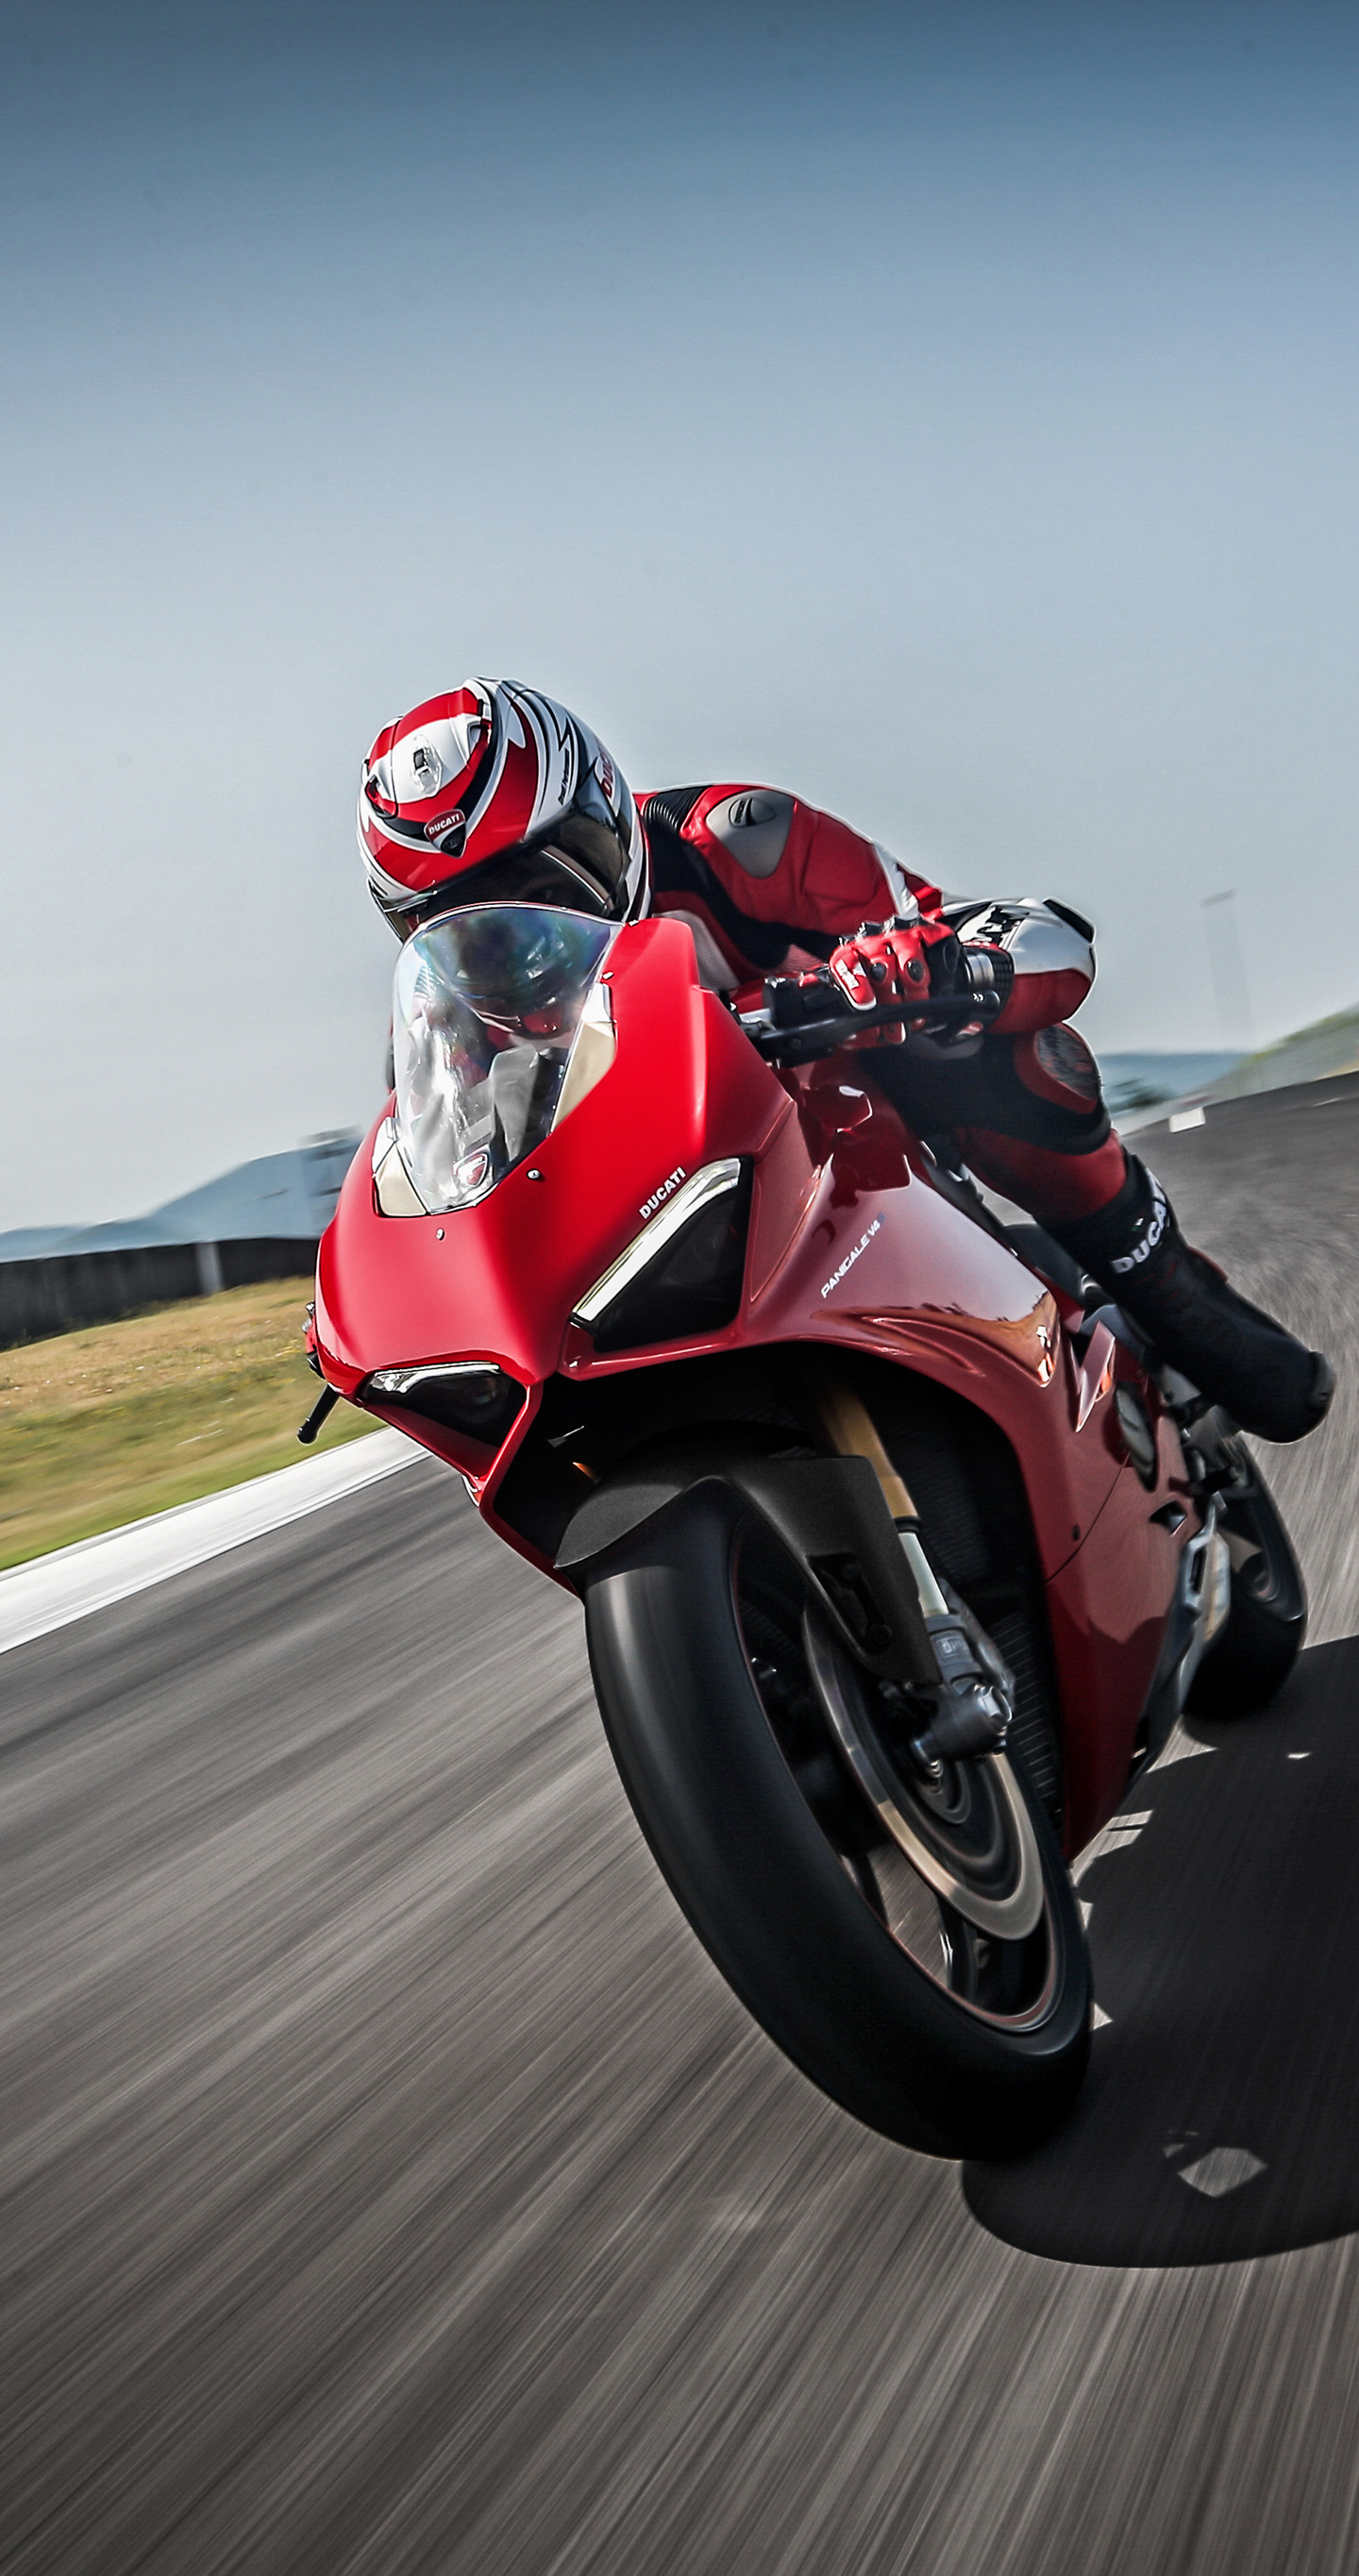 Ducati panigale v4, speciale, 2018, racing bike, 1440x2960 wallpaper